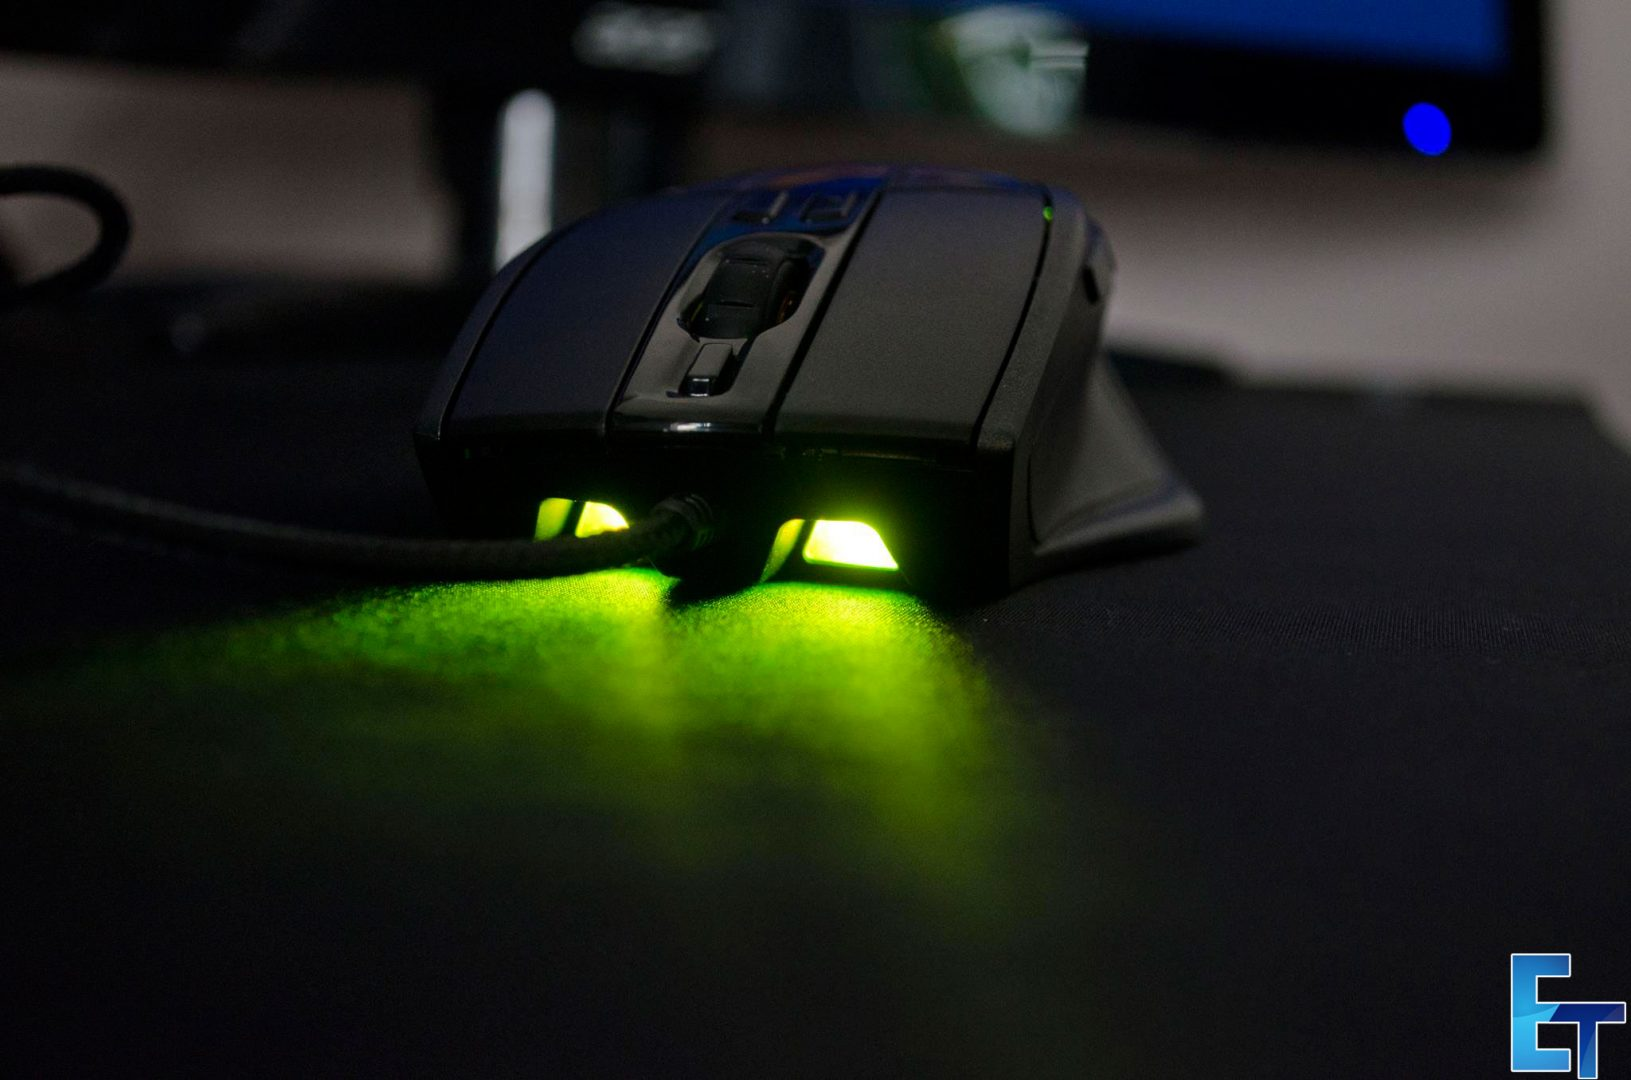 Cooler-Master-Sentinel-III-Ergonomic-Gaming-Mouse-Review_1